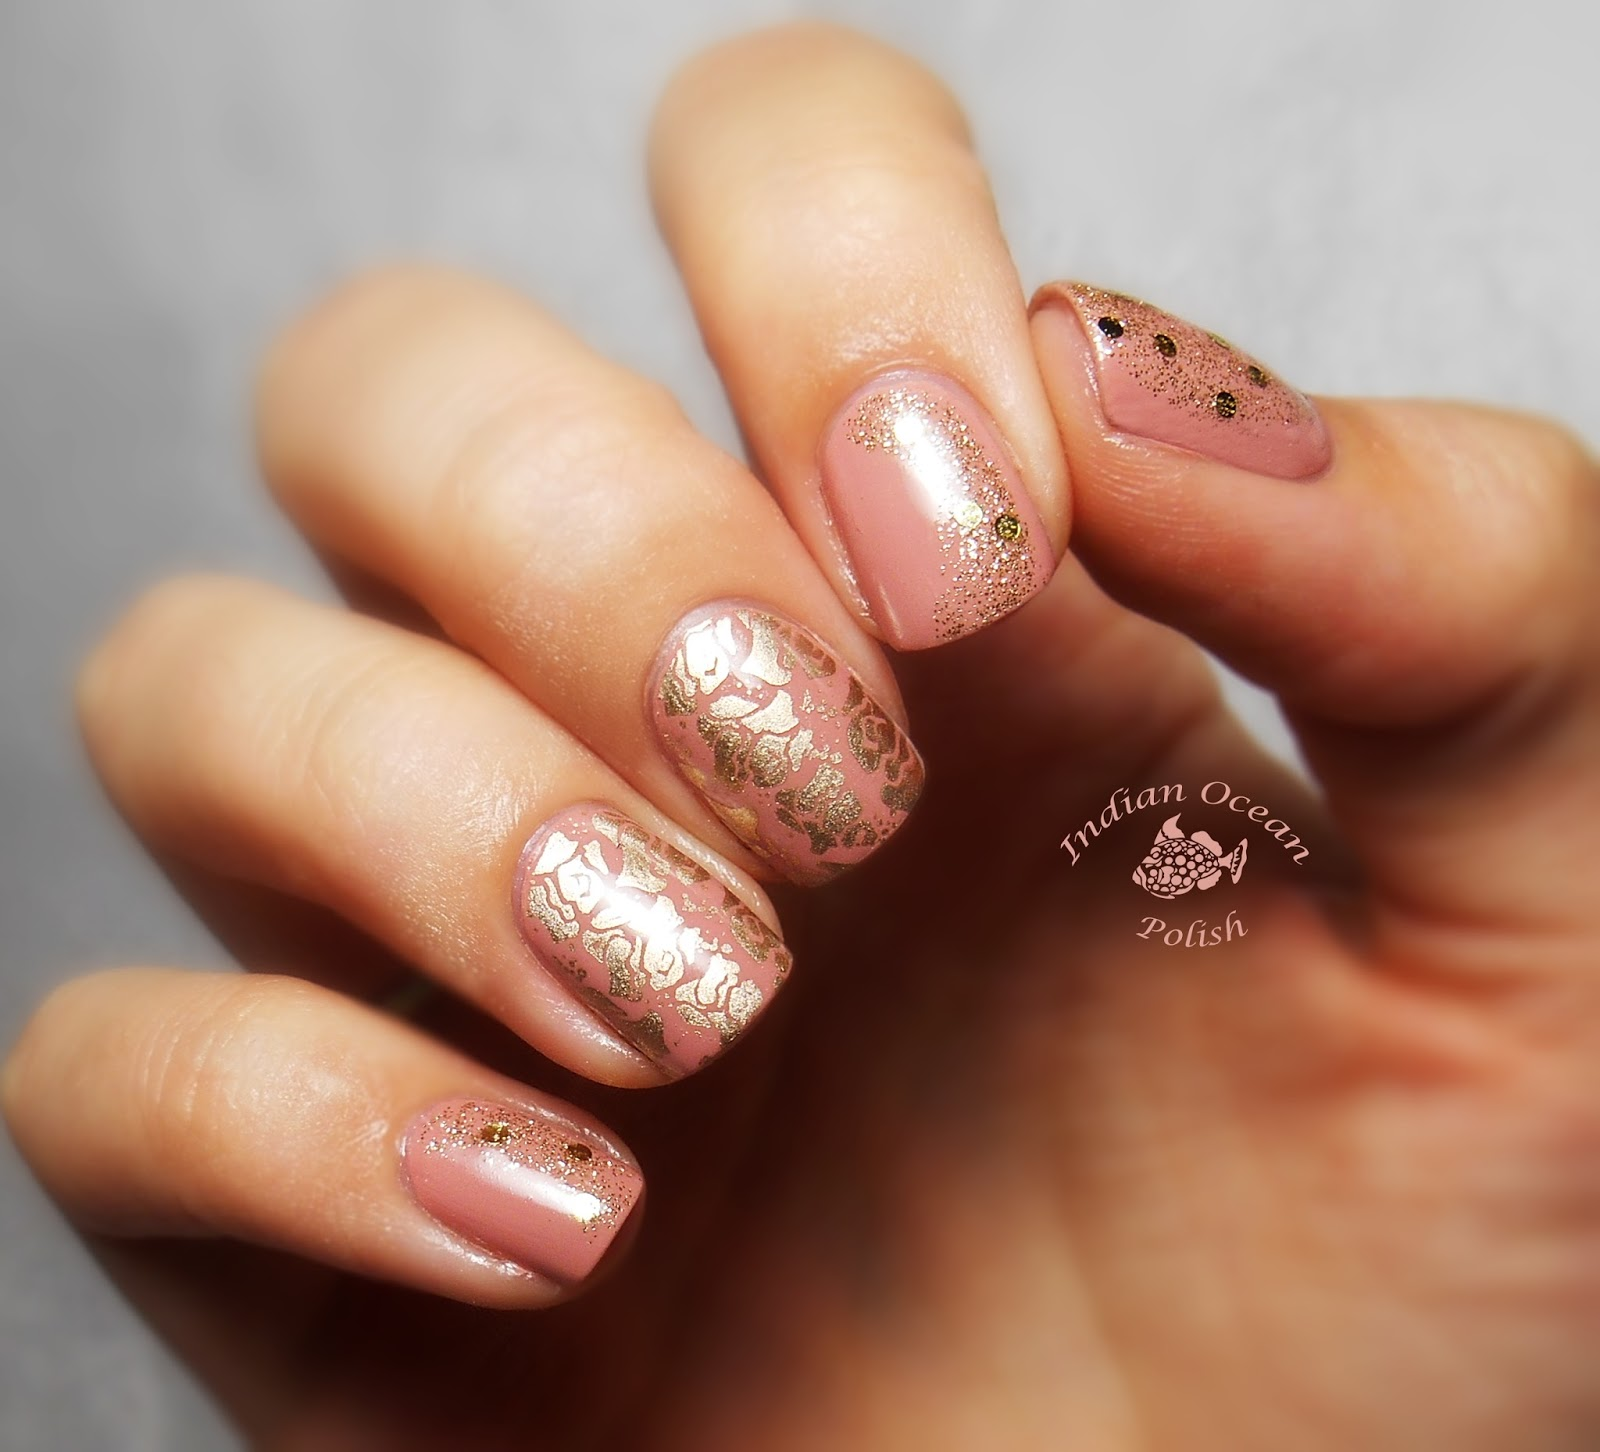 Indian Ocean Polish: Pink, Gold and Rose Nails